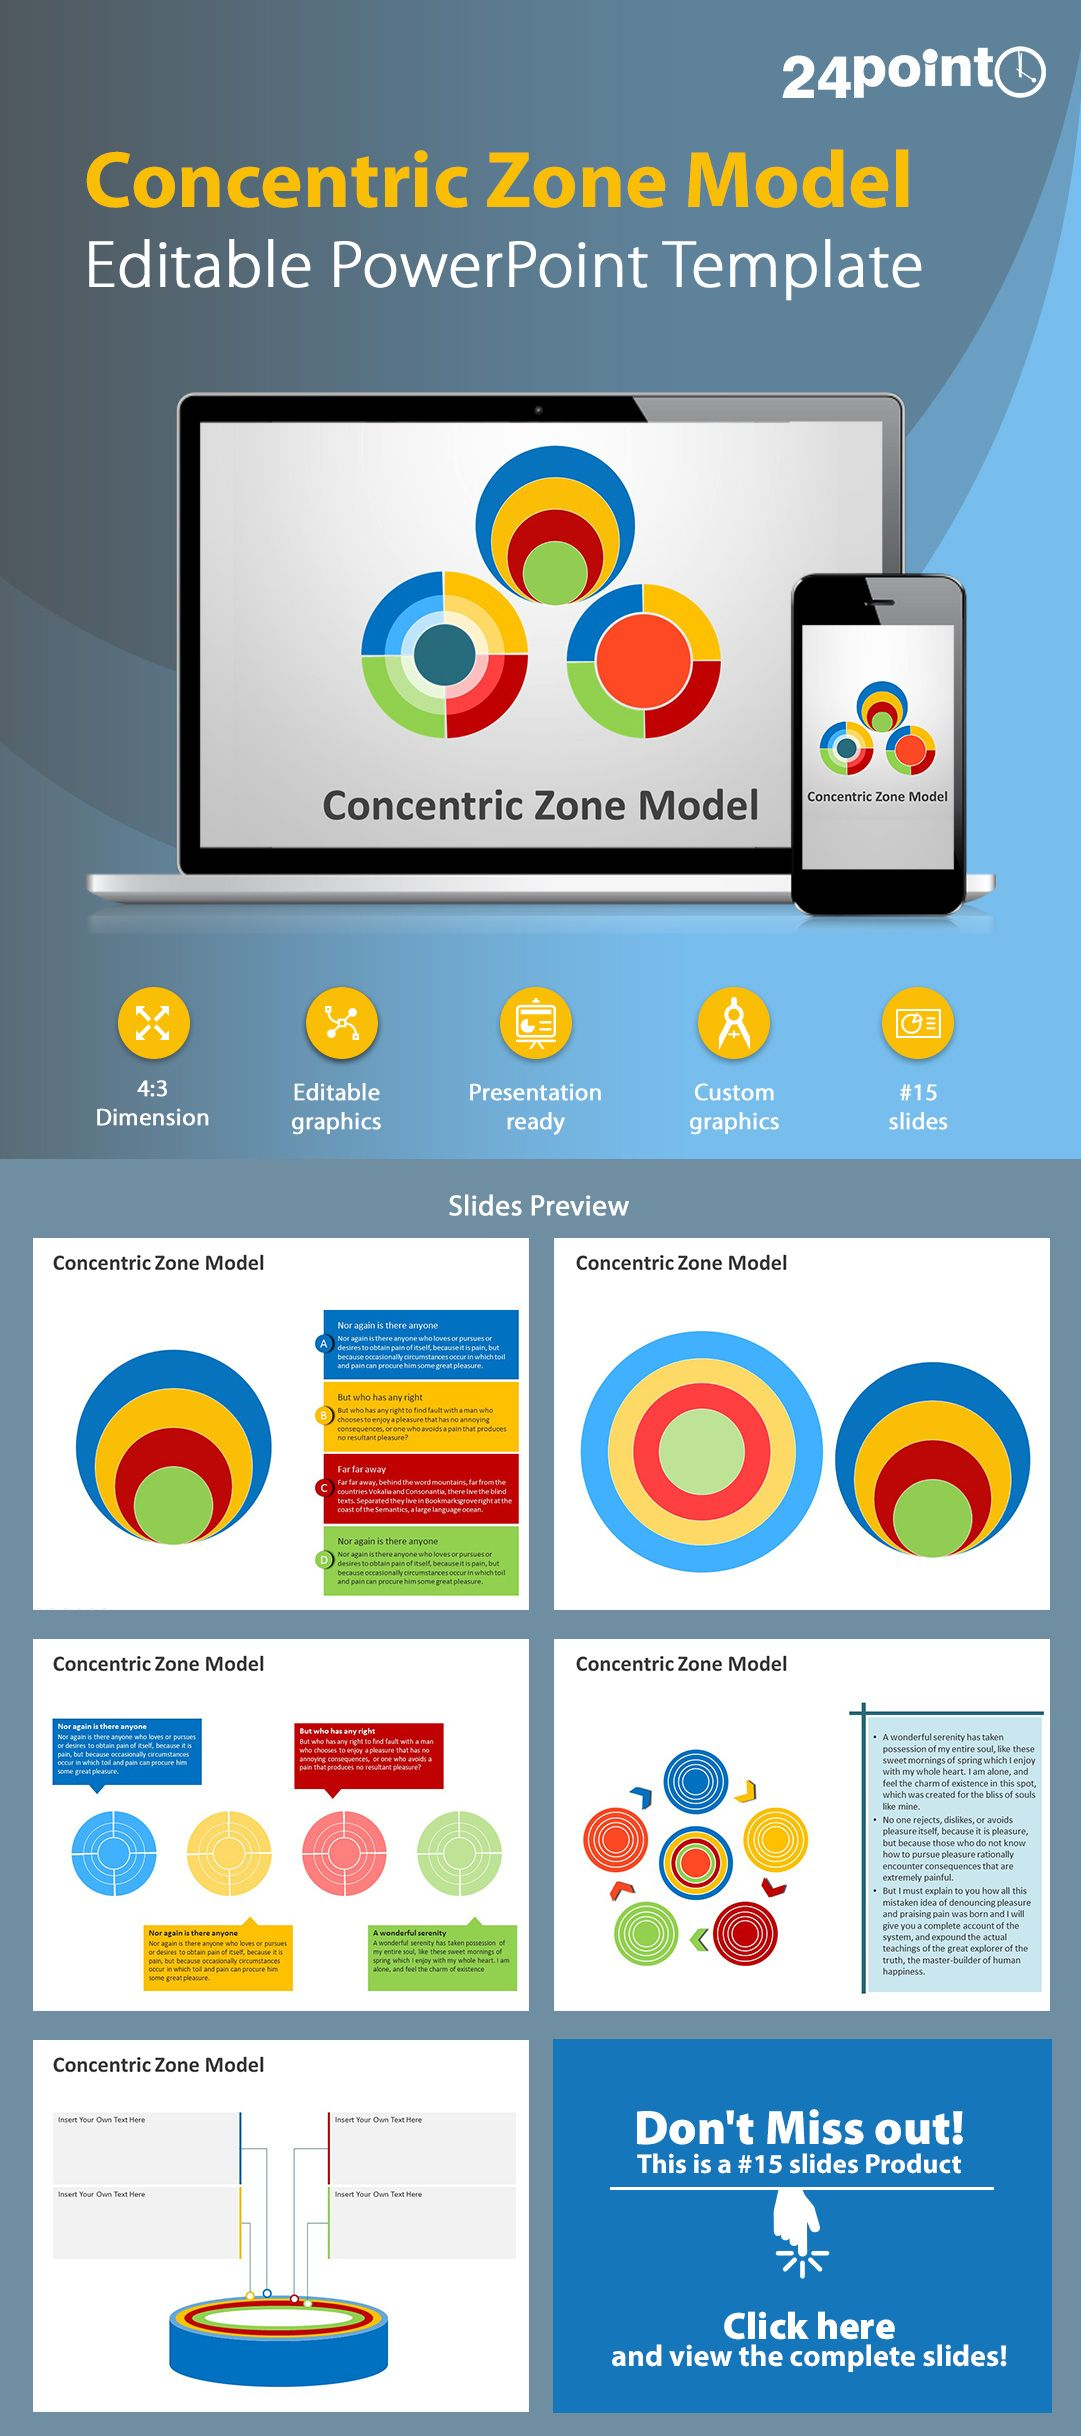 Concentric zone model editable powerpoint template powerpoint concentric zone model editable powerpoint template toneelgroepblik Image collections